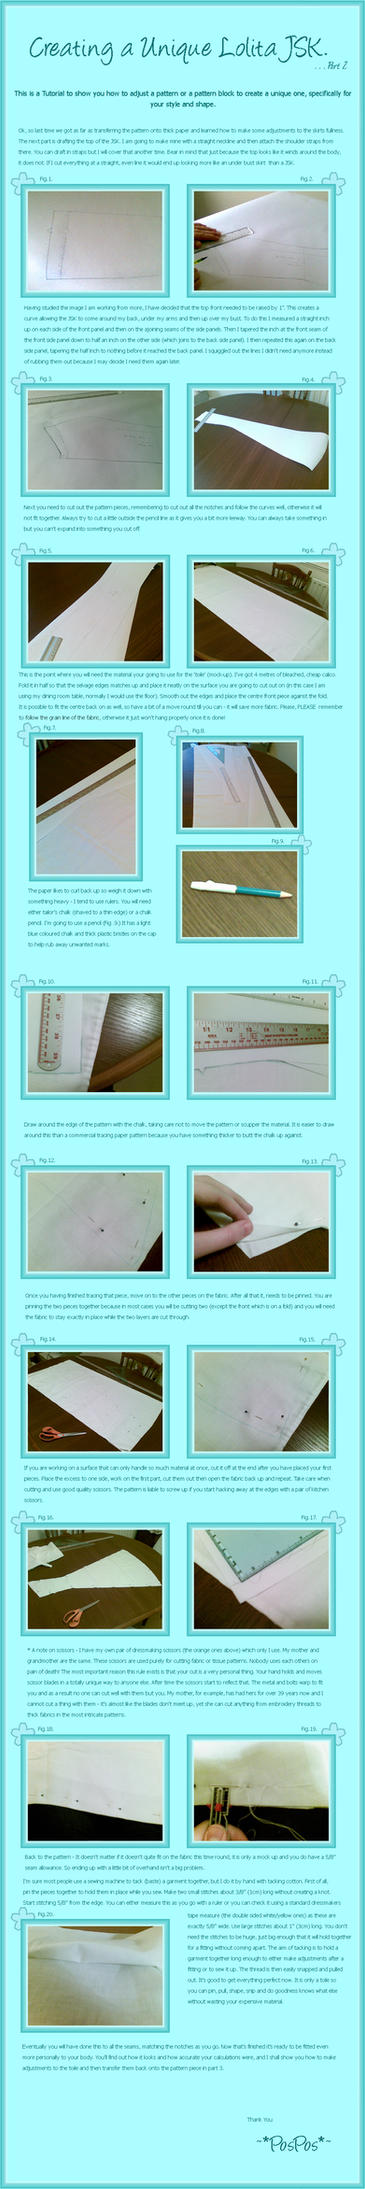 Lolita Dress Tutorial Part 2 by Pos-Pos